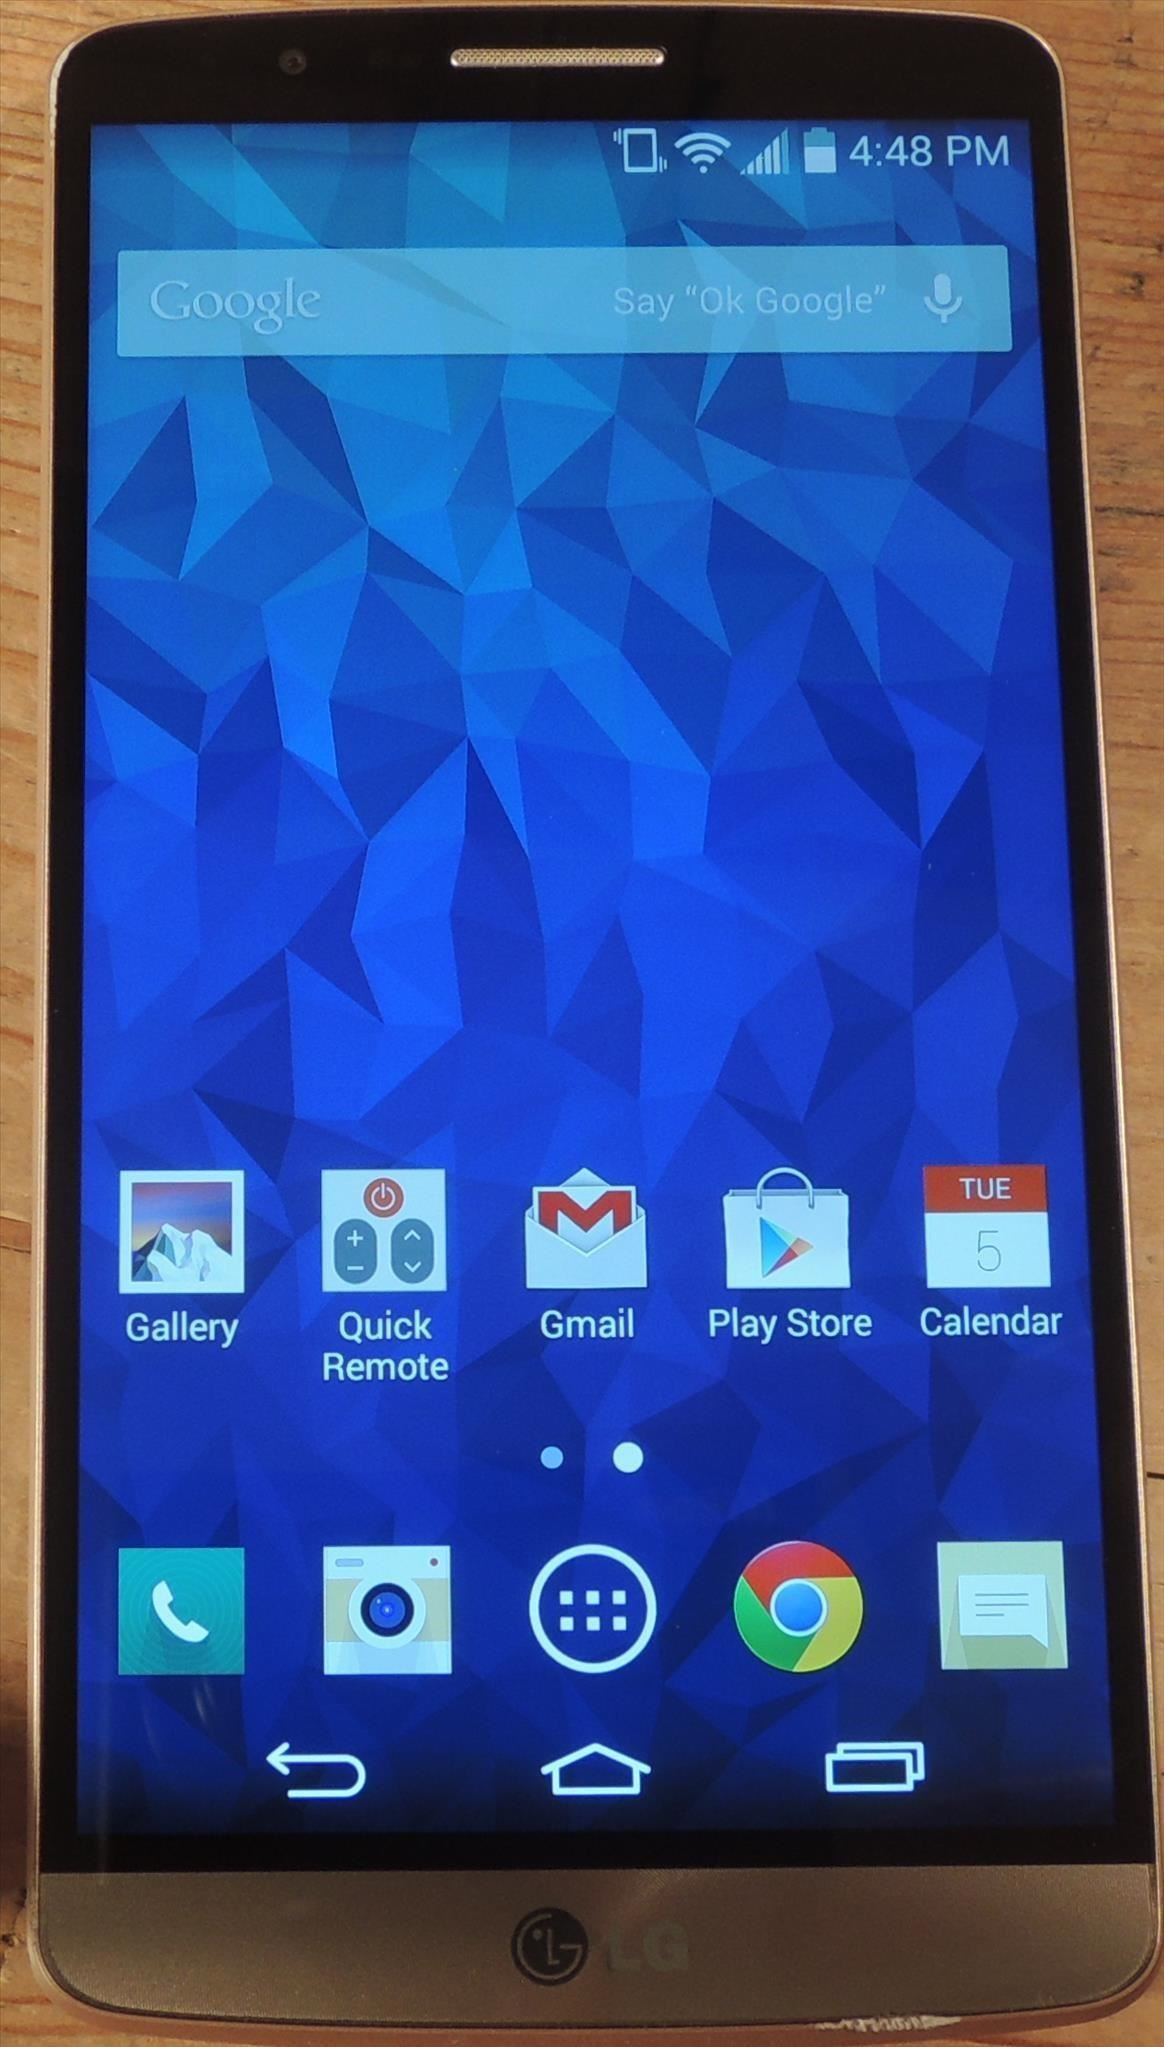 How to Adjust Contrast & Hue Levels on Your LG G3 for a More Vivid Display